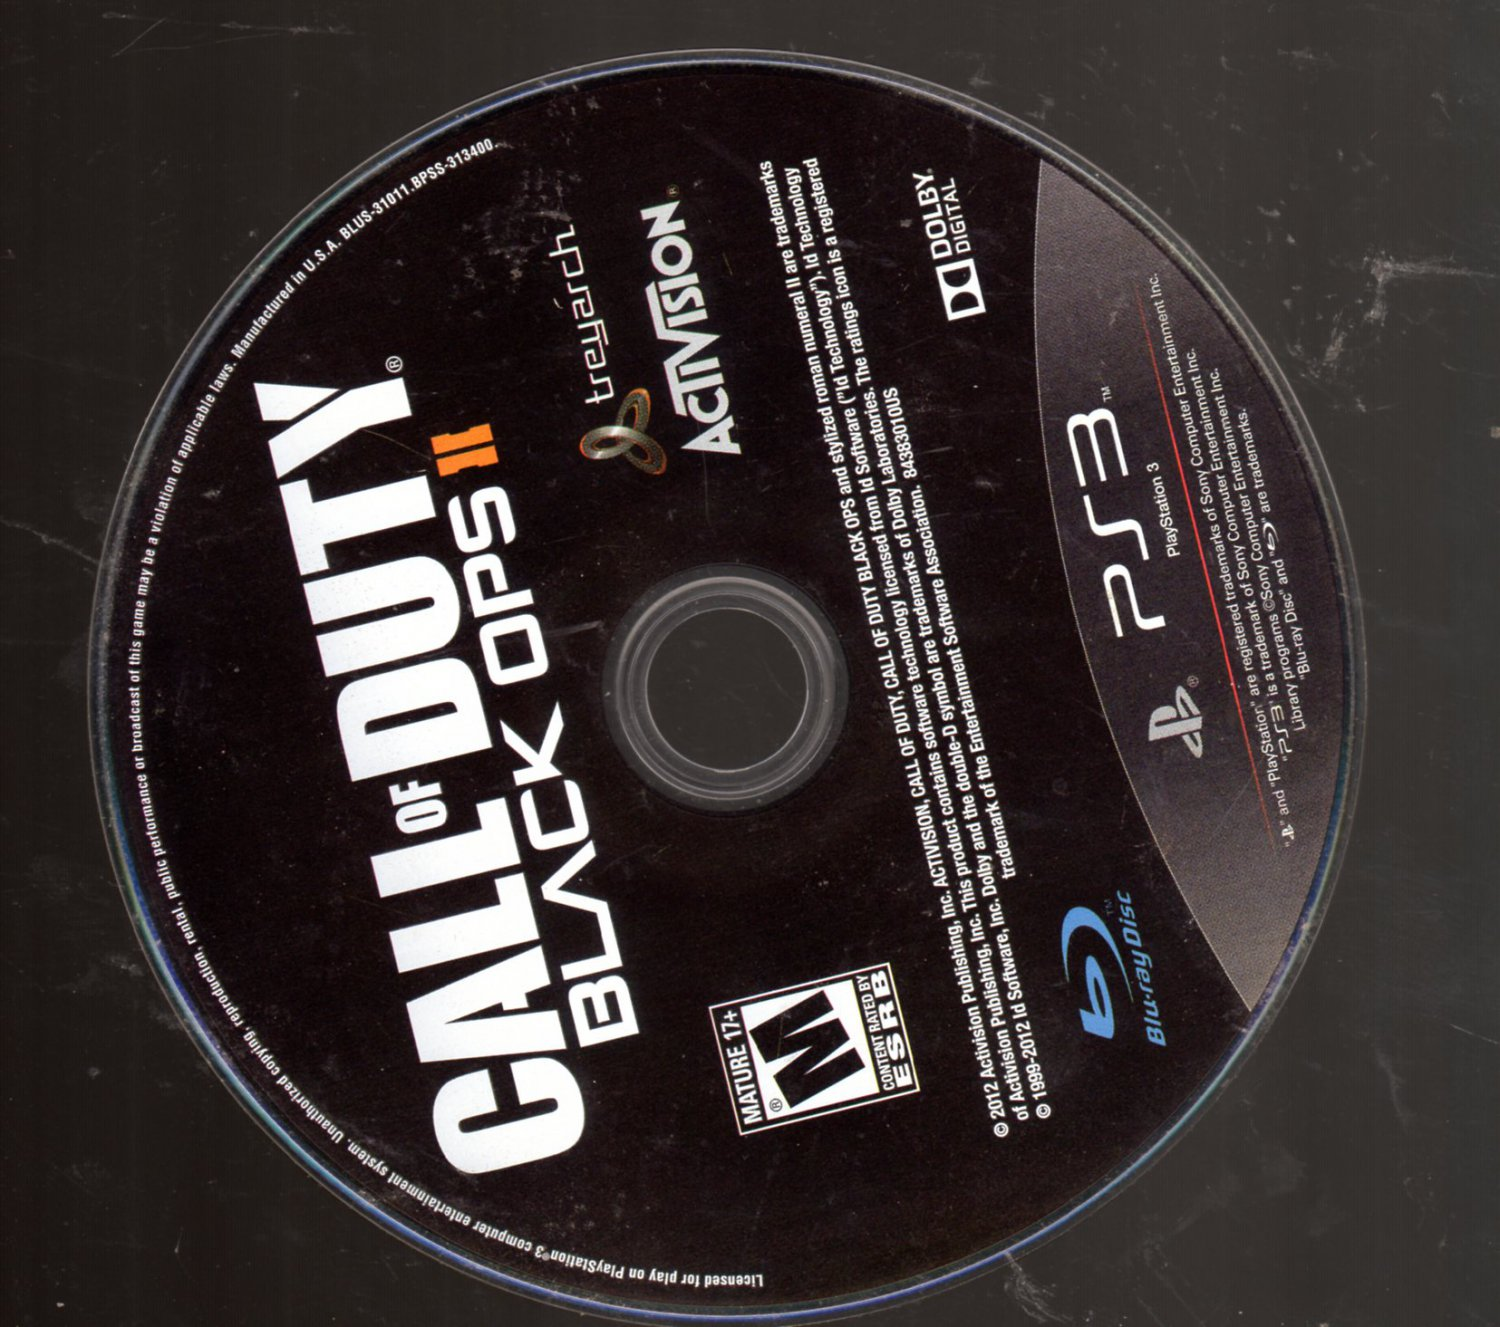 Call Of Duty: Black Ops Ii Ps3- Playstation 3: Amazon.it ...